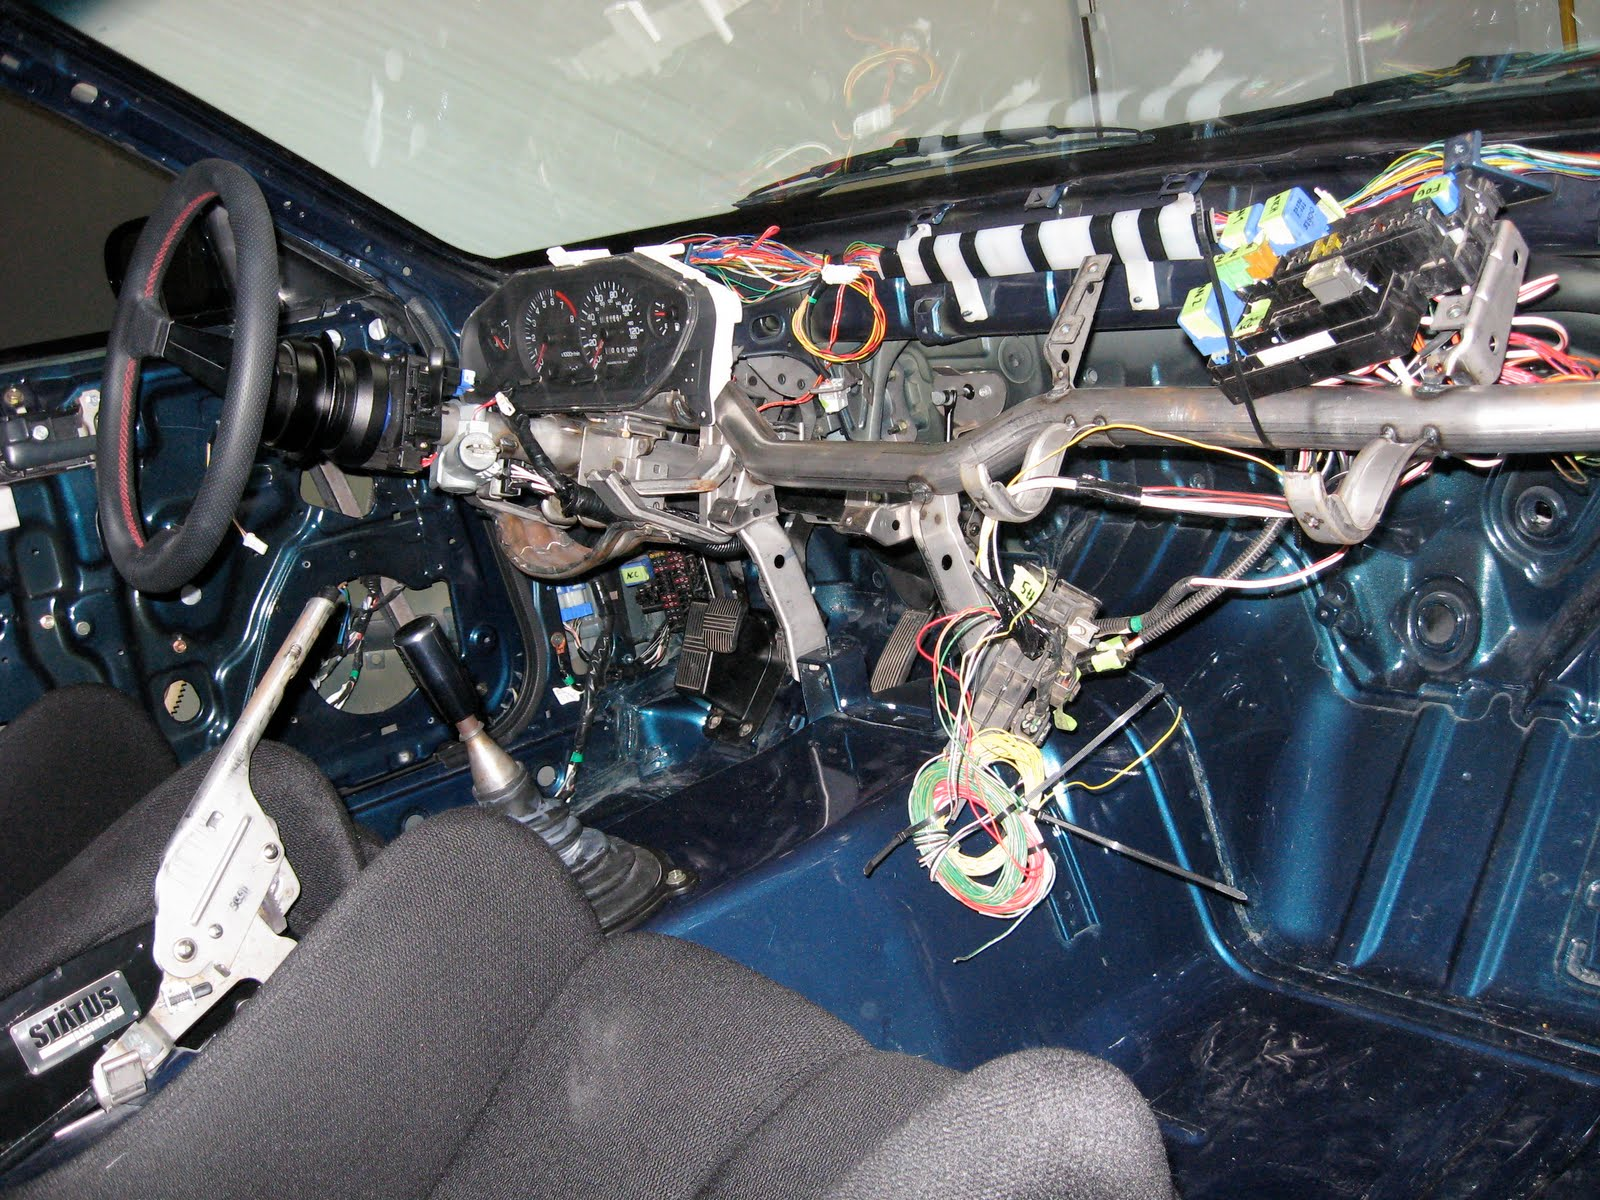 hight resolution of 1995 240sx wiring harness wiring diagram fascinating 240sx body harness wiring diagram 1995 240sx wiring harness